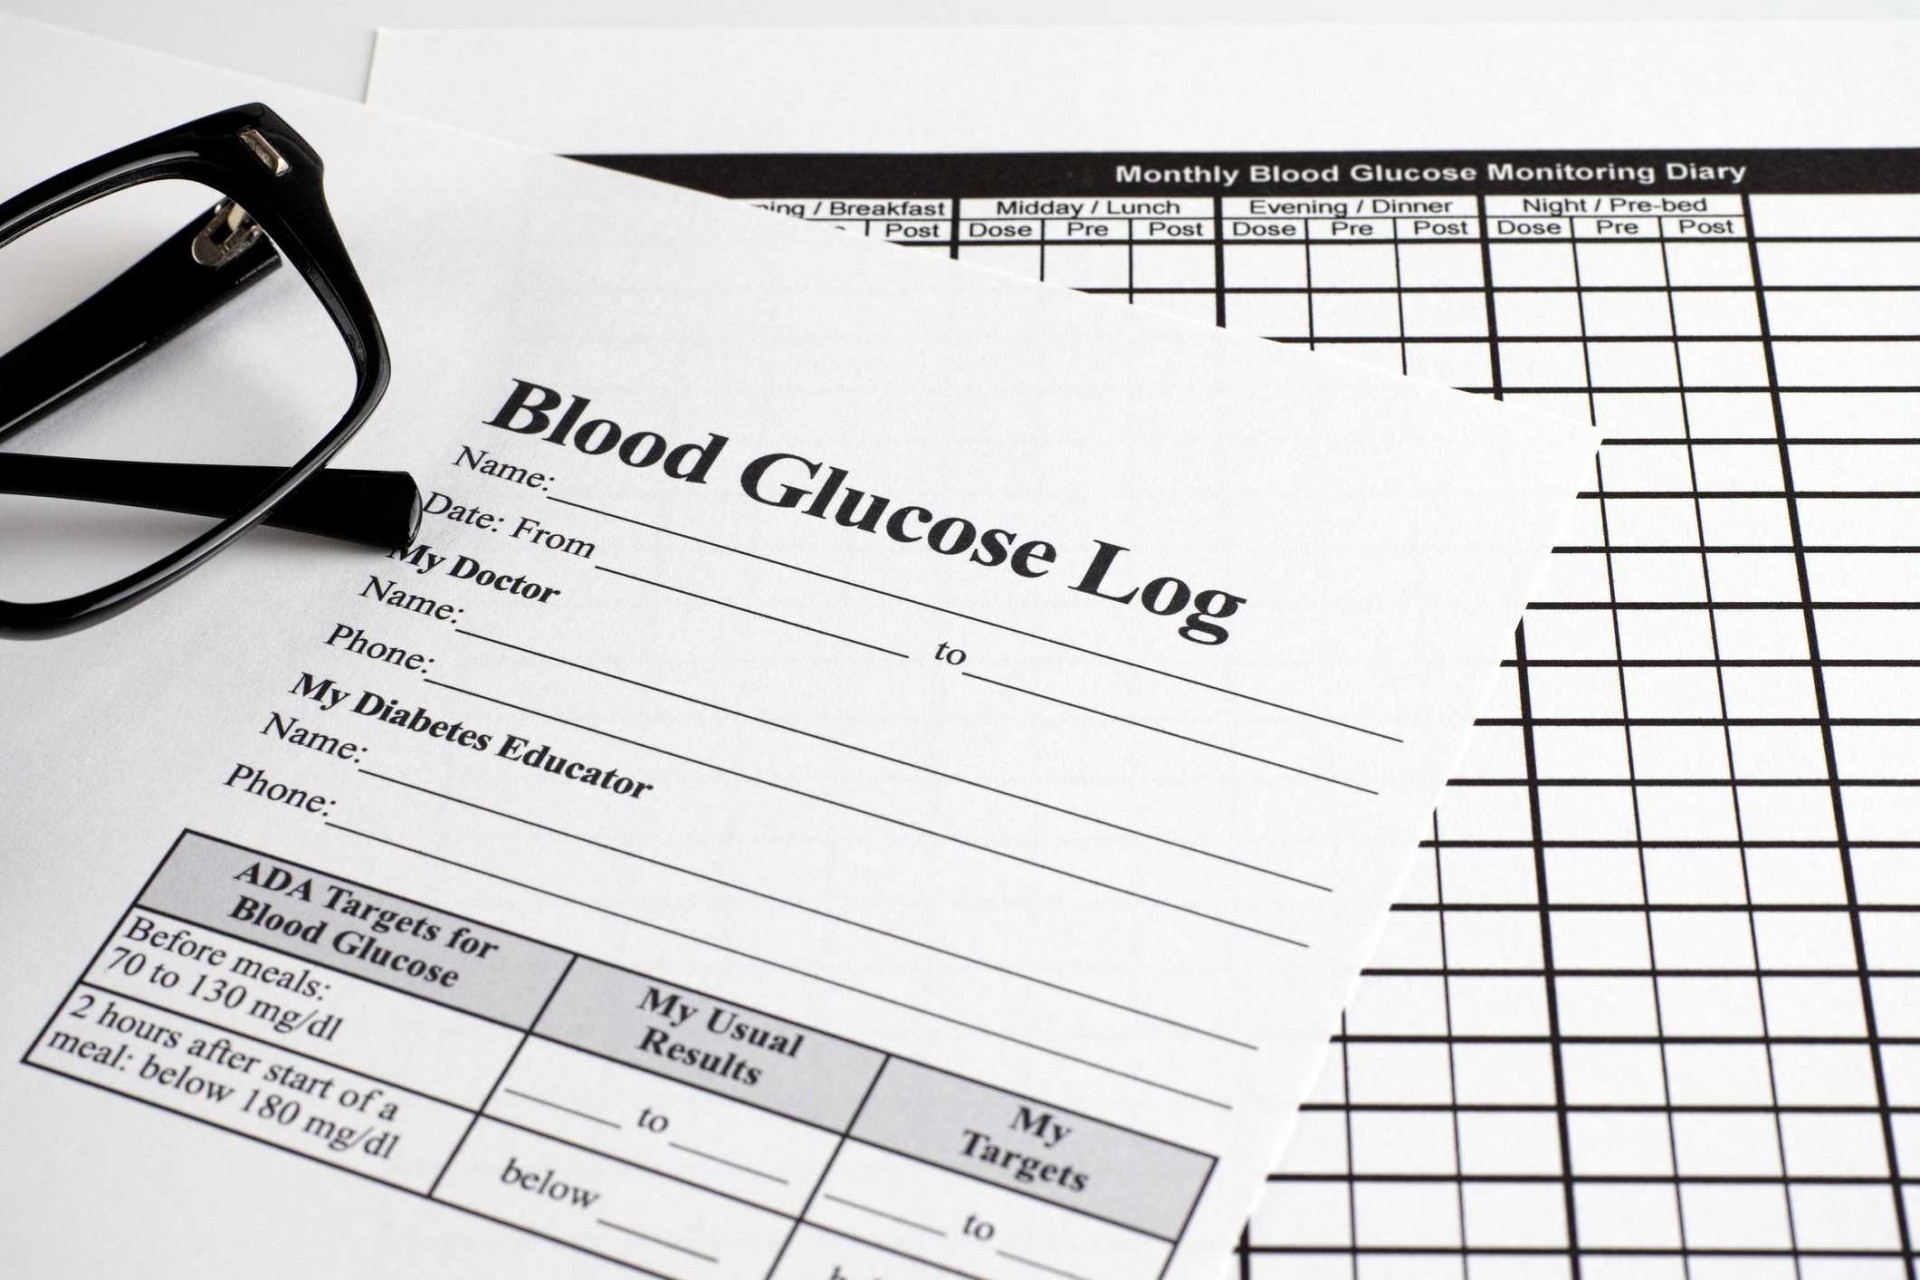 007 Frightening Blood Glucose Log Form Highest Quality  Forms Weekly Sheet Level1920